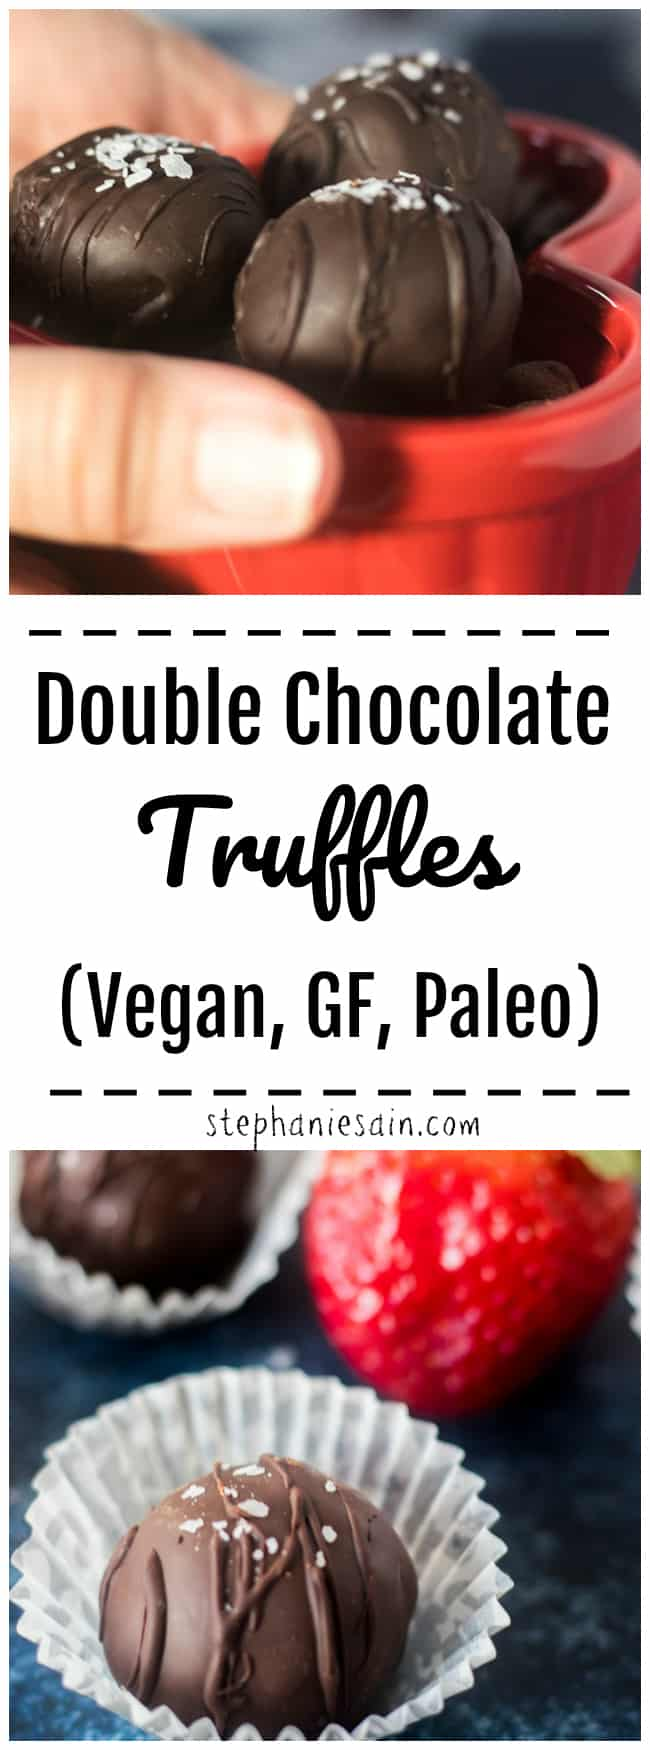 These Double Chocolate Truffles are so easy to make and made with healthy ingredients. Great for a healthy dessert, sweet snack or for your Valentine. Vegan, GF, DF, Paleo and No added refined sugar.